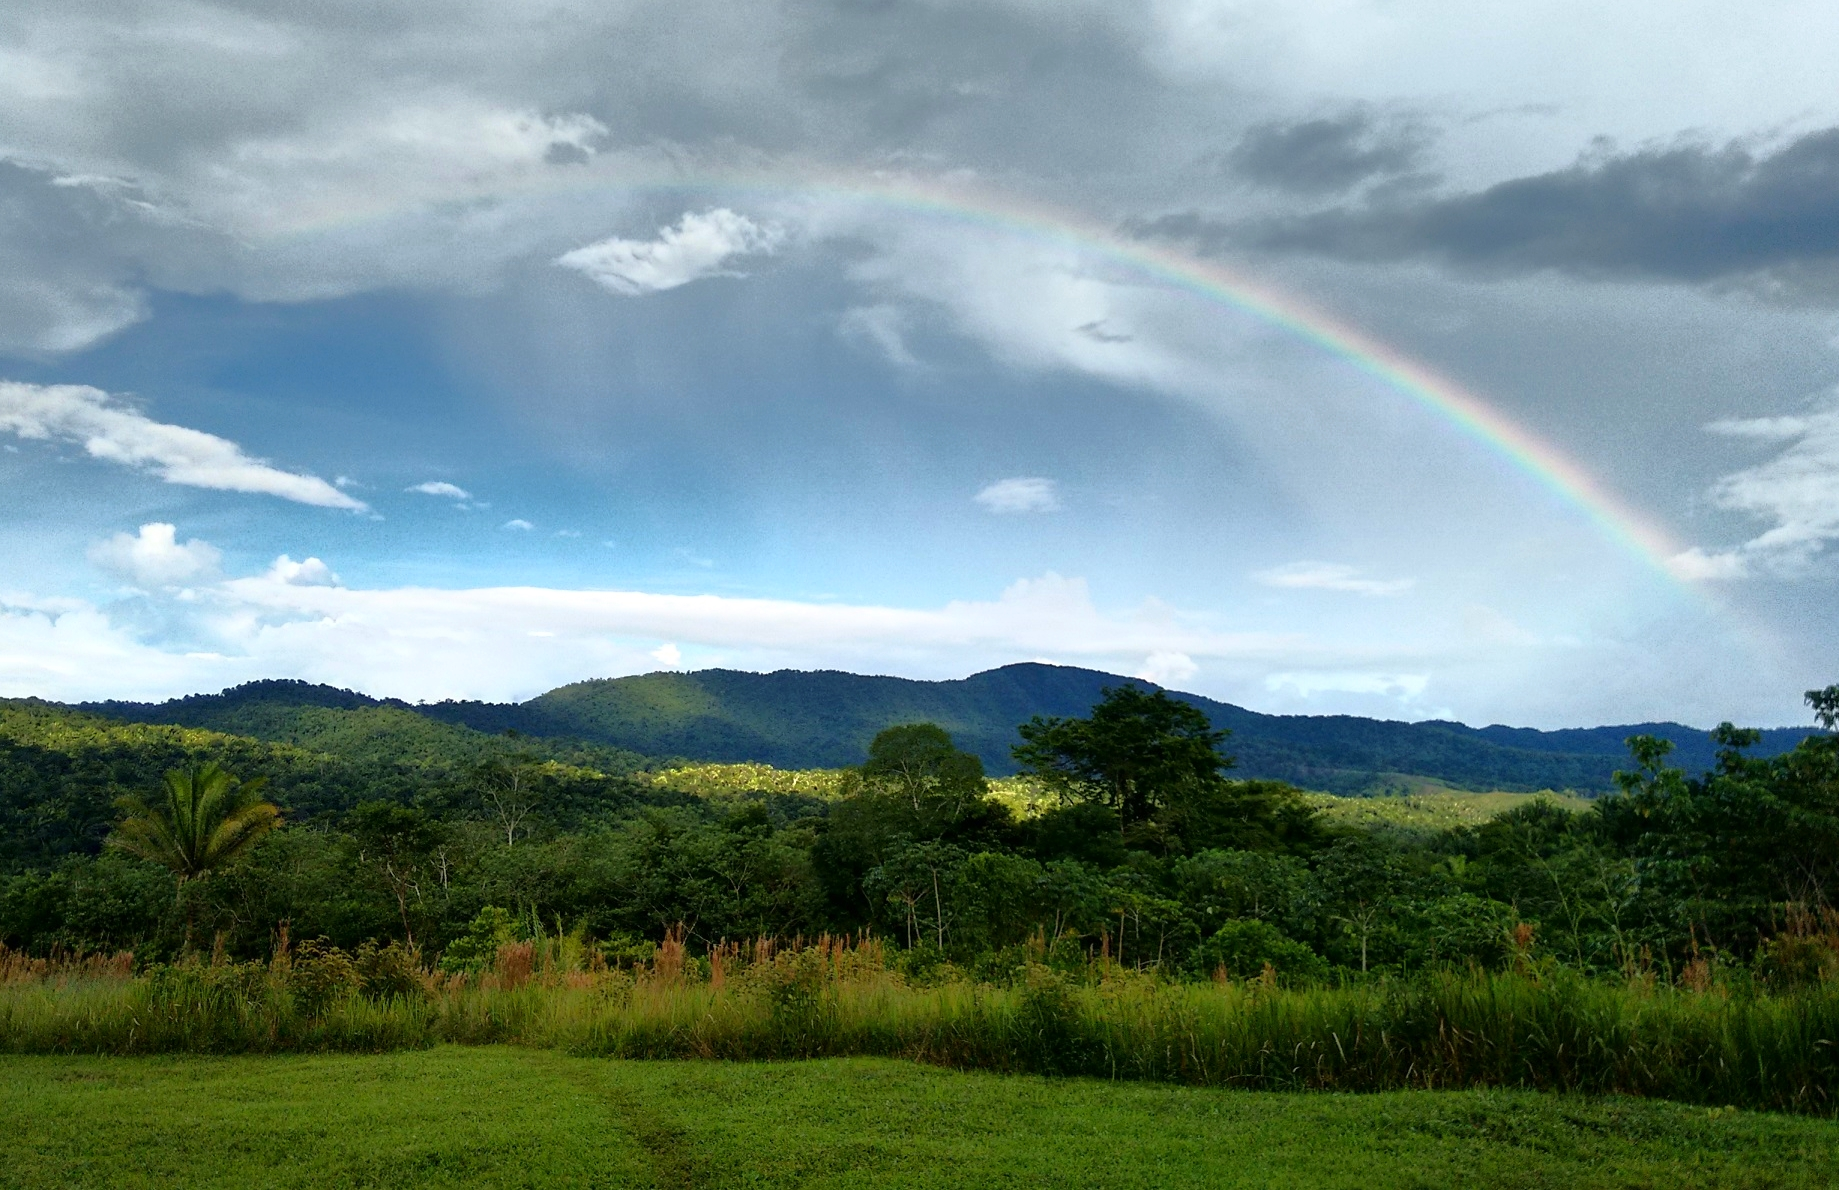 A rainbow stretches above the Jungle covered hills at the headquarters of SabreWing Travel on the Hummingbird Highway in Belize